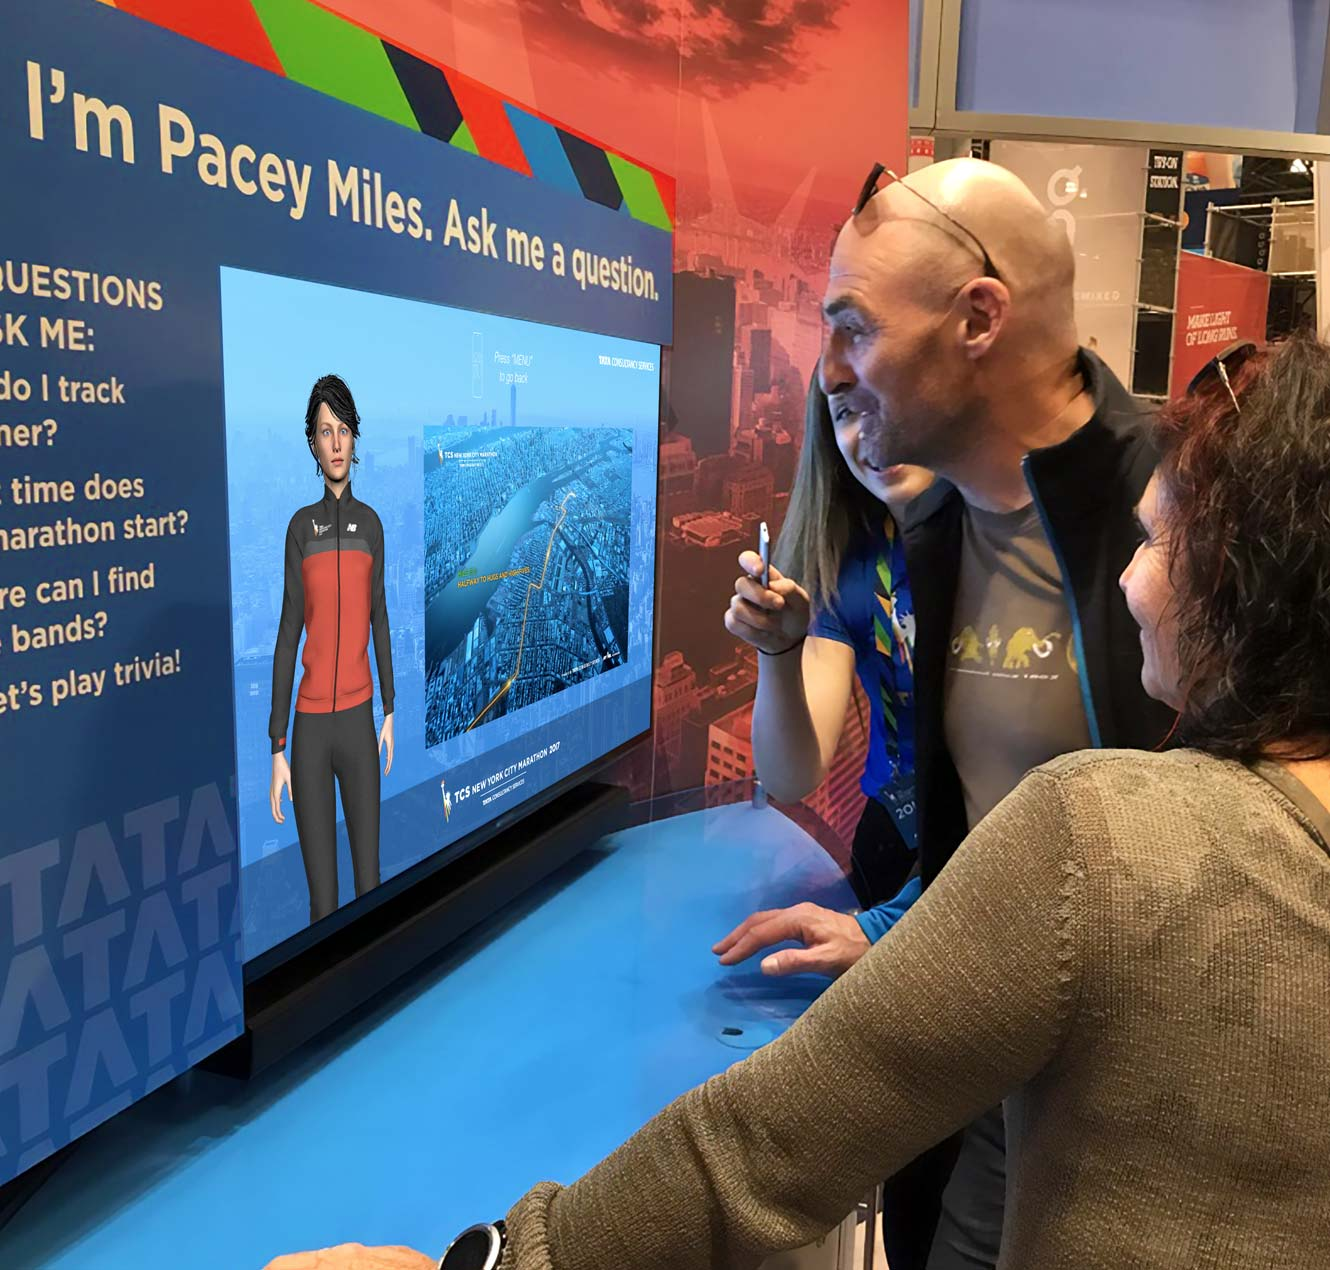 Virtual Assistant Helps at TCS NYC Marathon